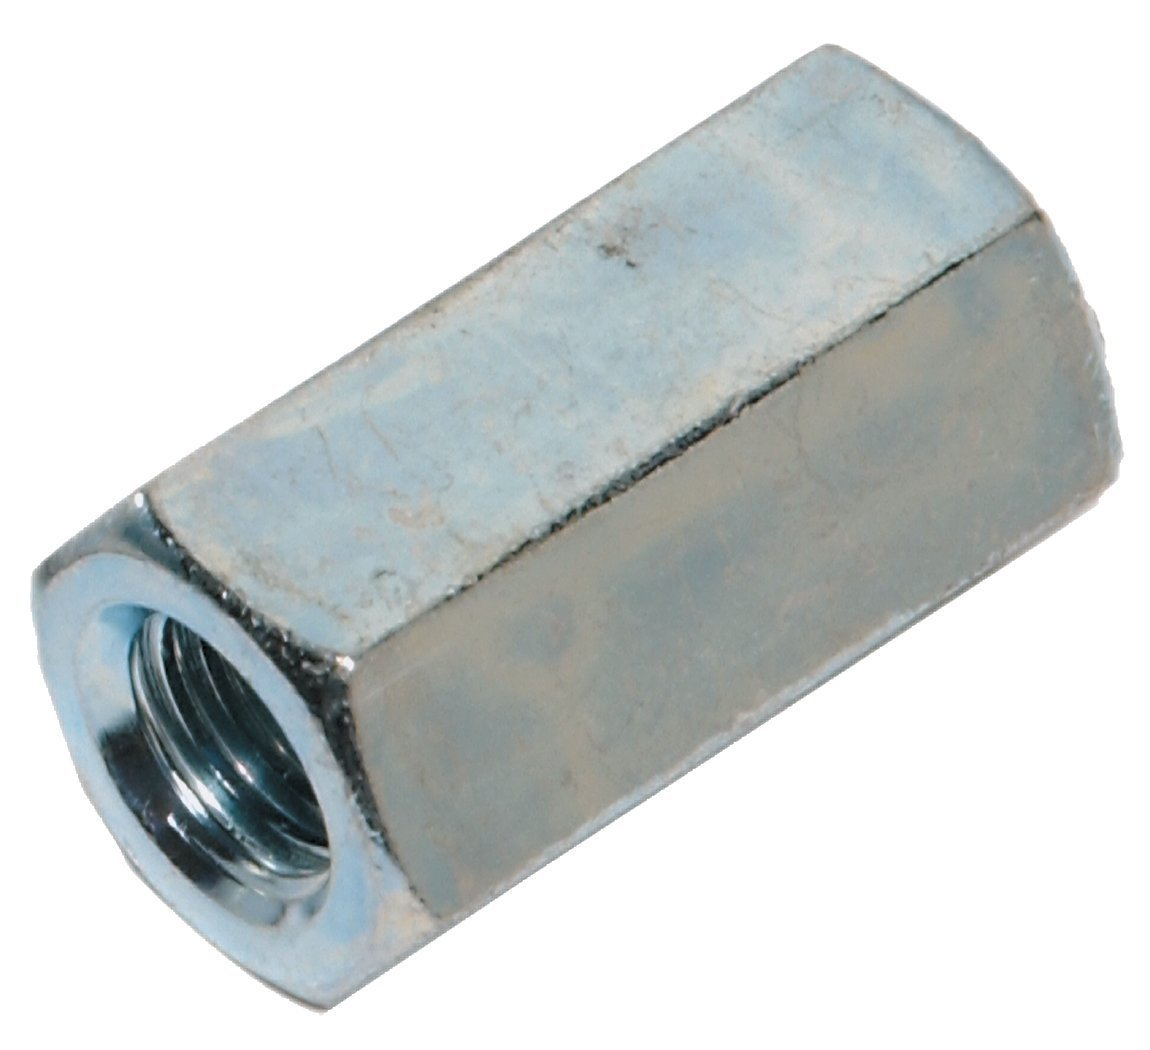 The Hillman Group 180207 Coupling Nut 10-24 50-Pack